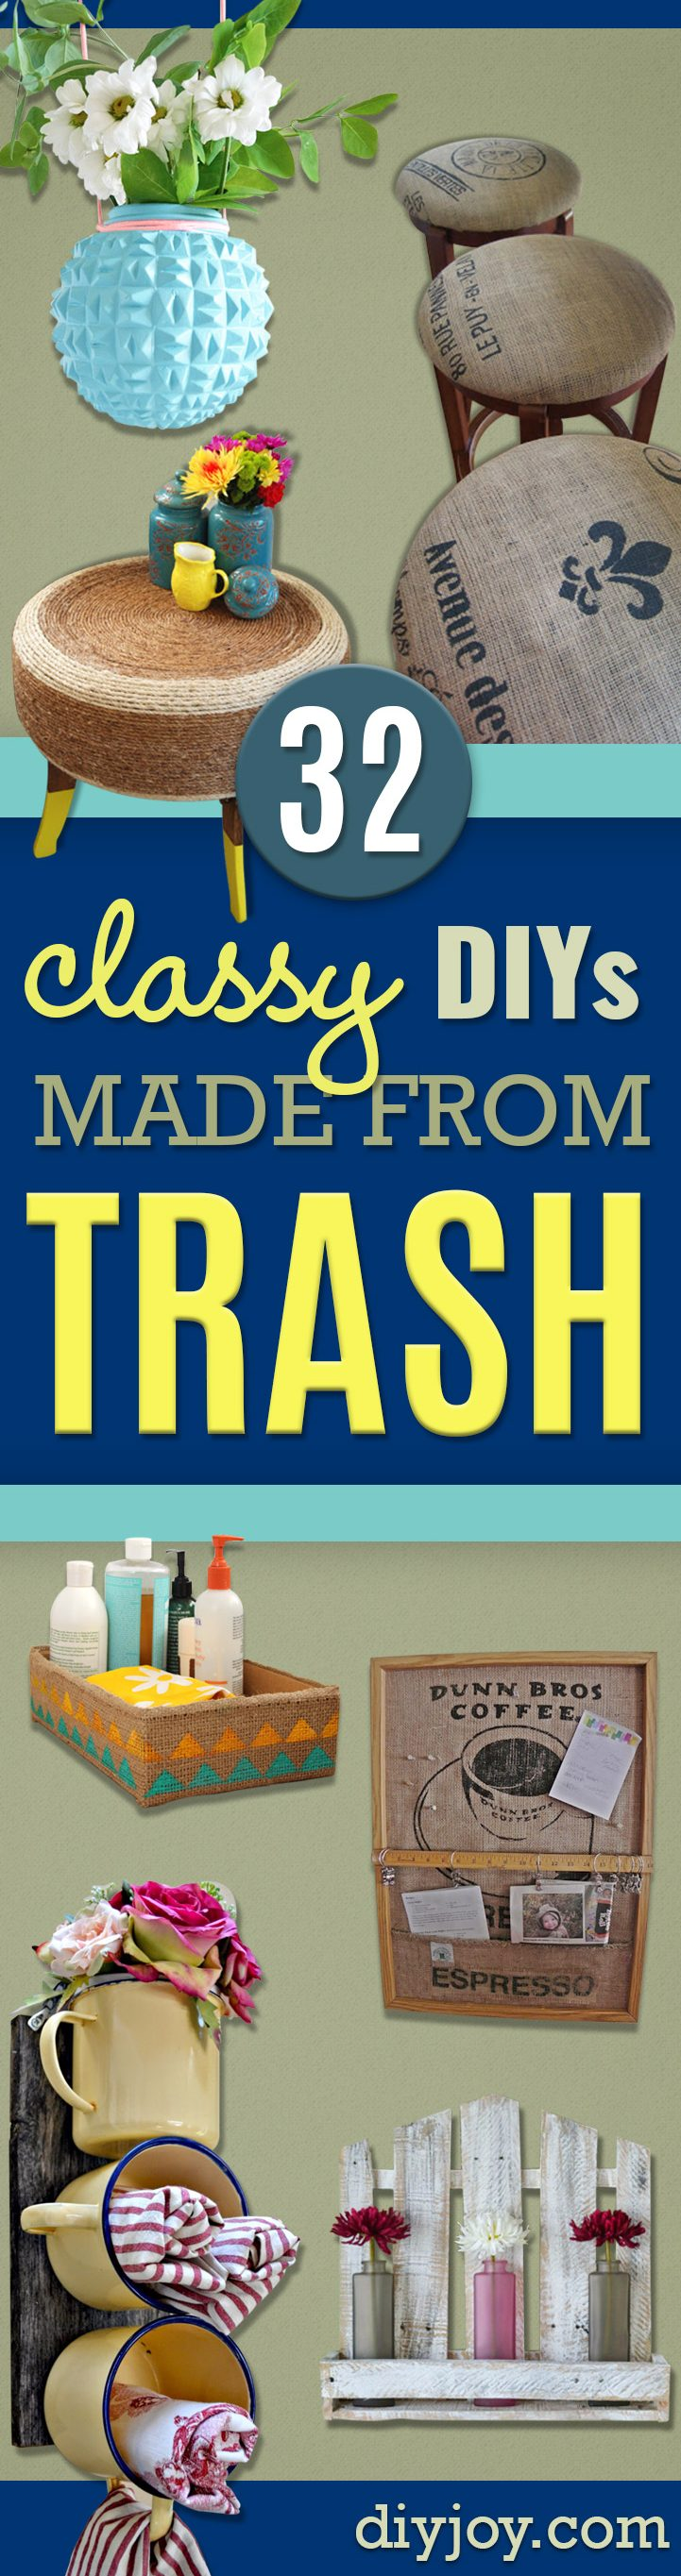 DIY Projects Made From Trash - Recycled Crafts and DIY Made from Upcycled Items You Don't Want To Throw Away. Home Decor, Gifts and Fun Ideas for Kids, Adults and Teens Plastic Bottle and Back, Repurposed Wood DYI